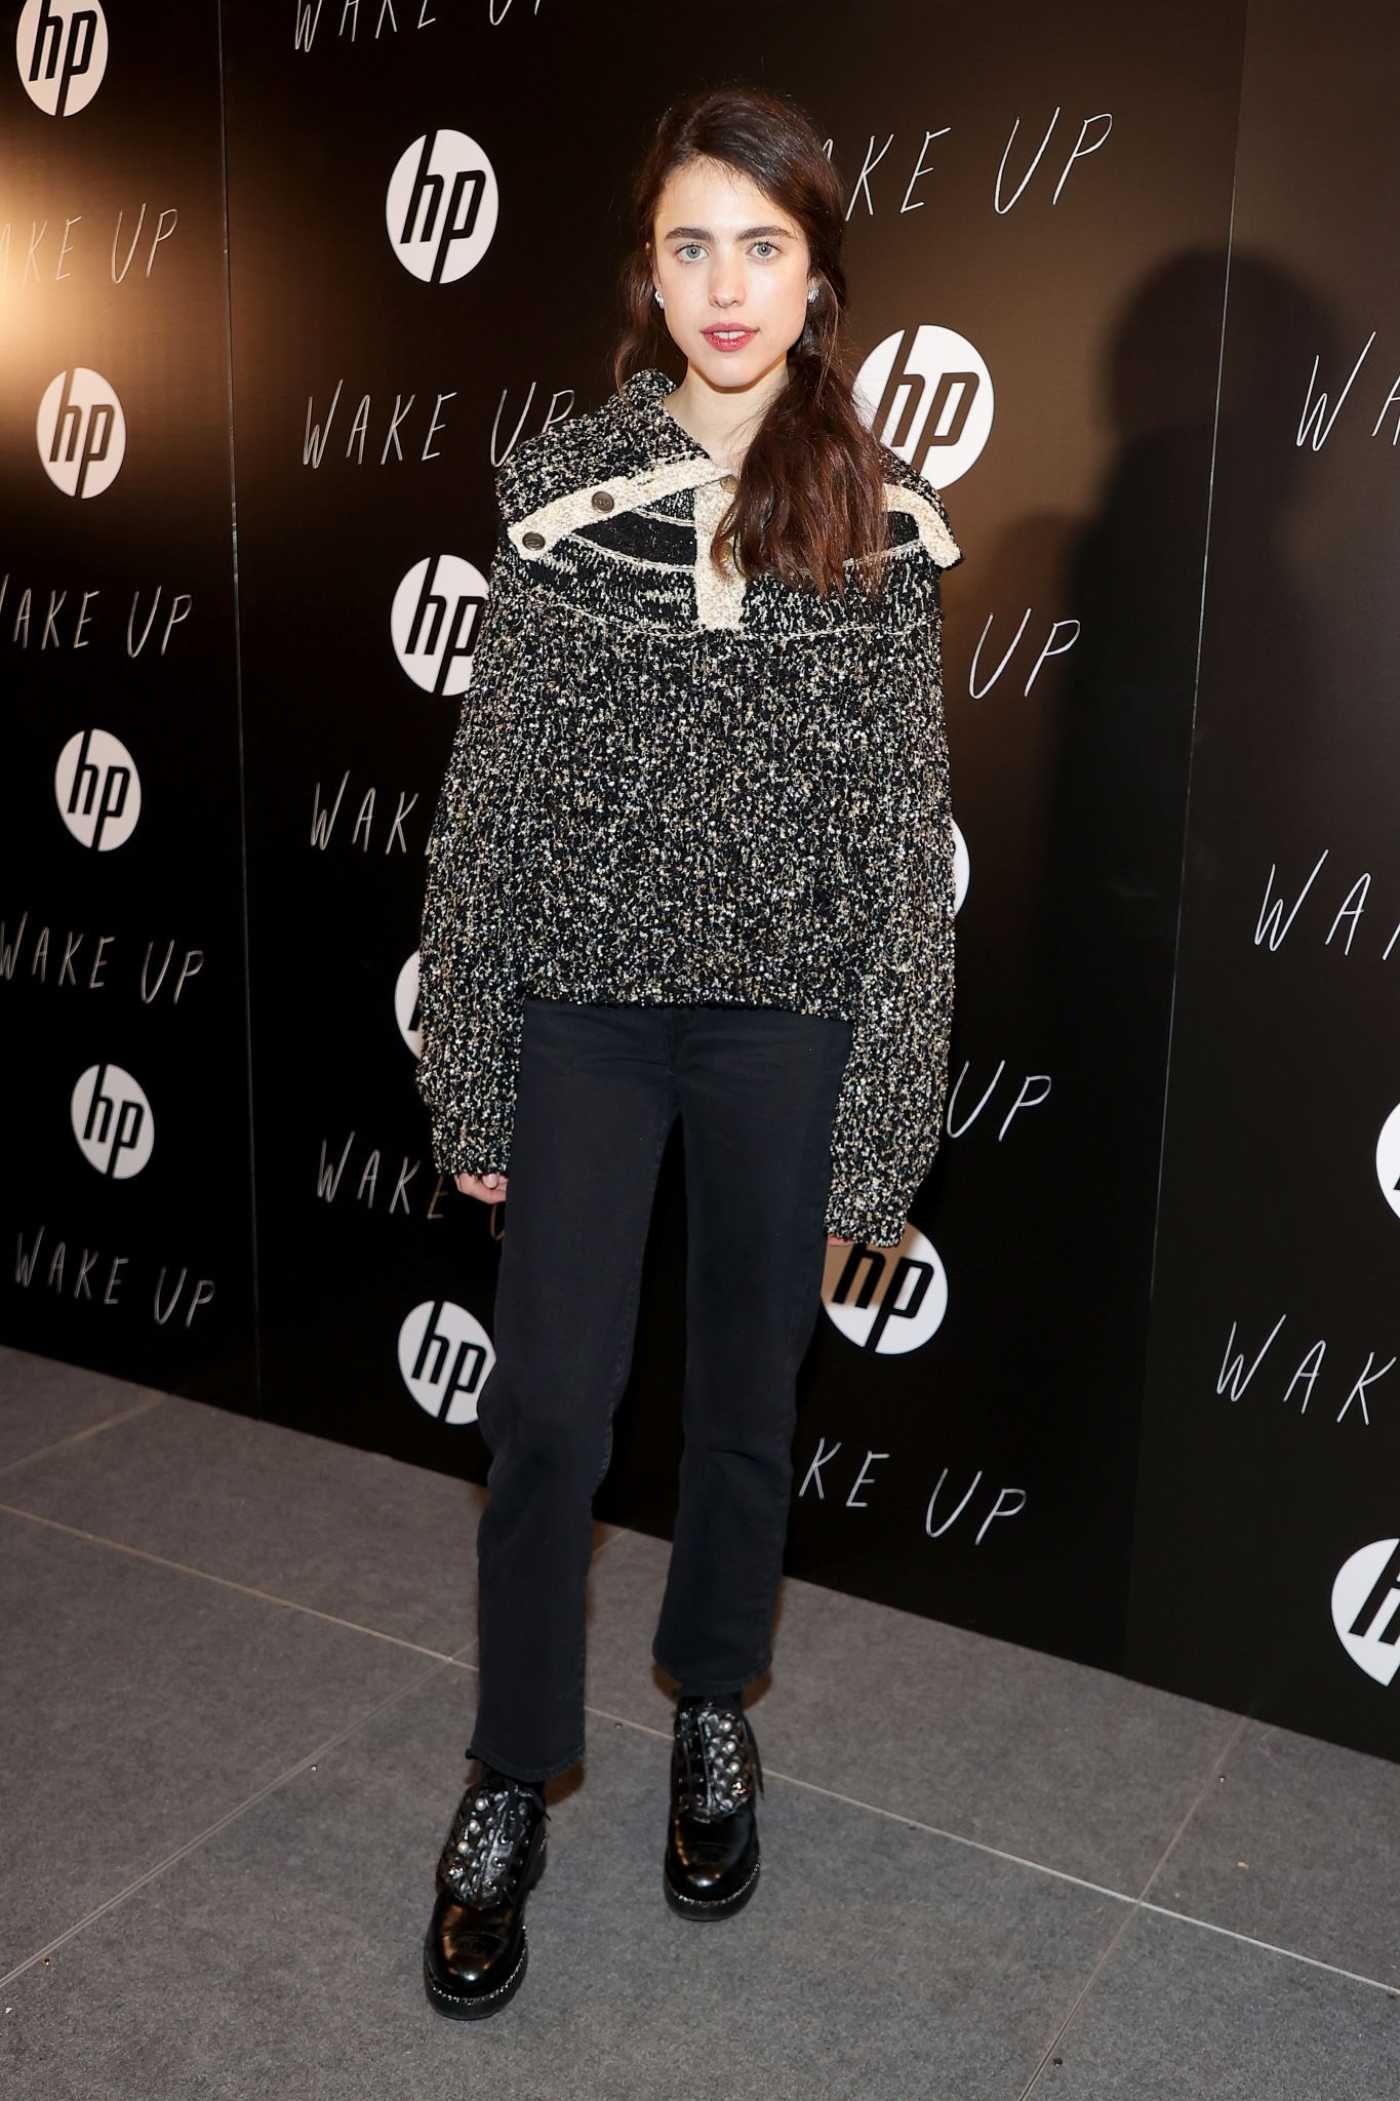 Margaret Qualley Attends the Wake Up at Chefdance Premiere During 2020 Sundance Film Festival in Park City 01/24/2020